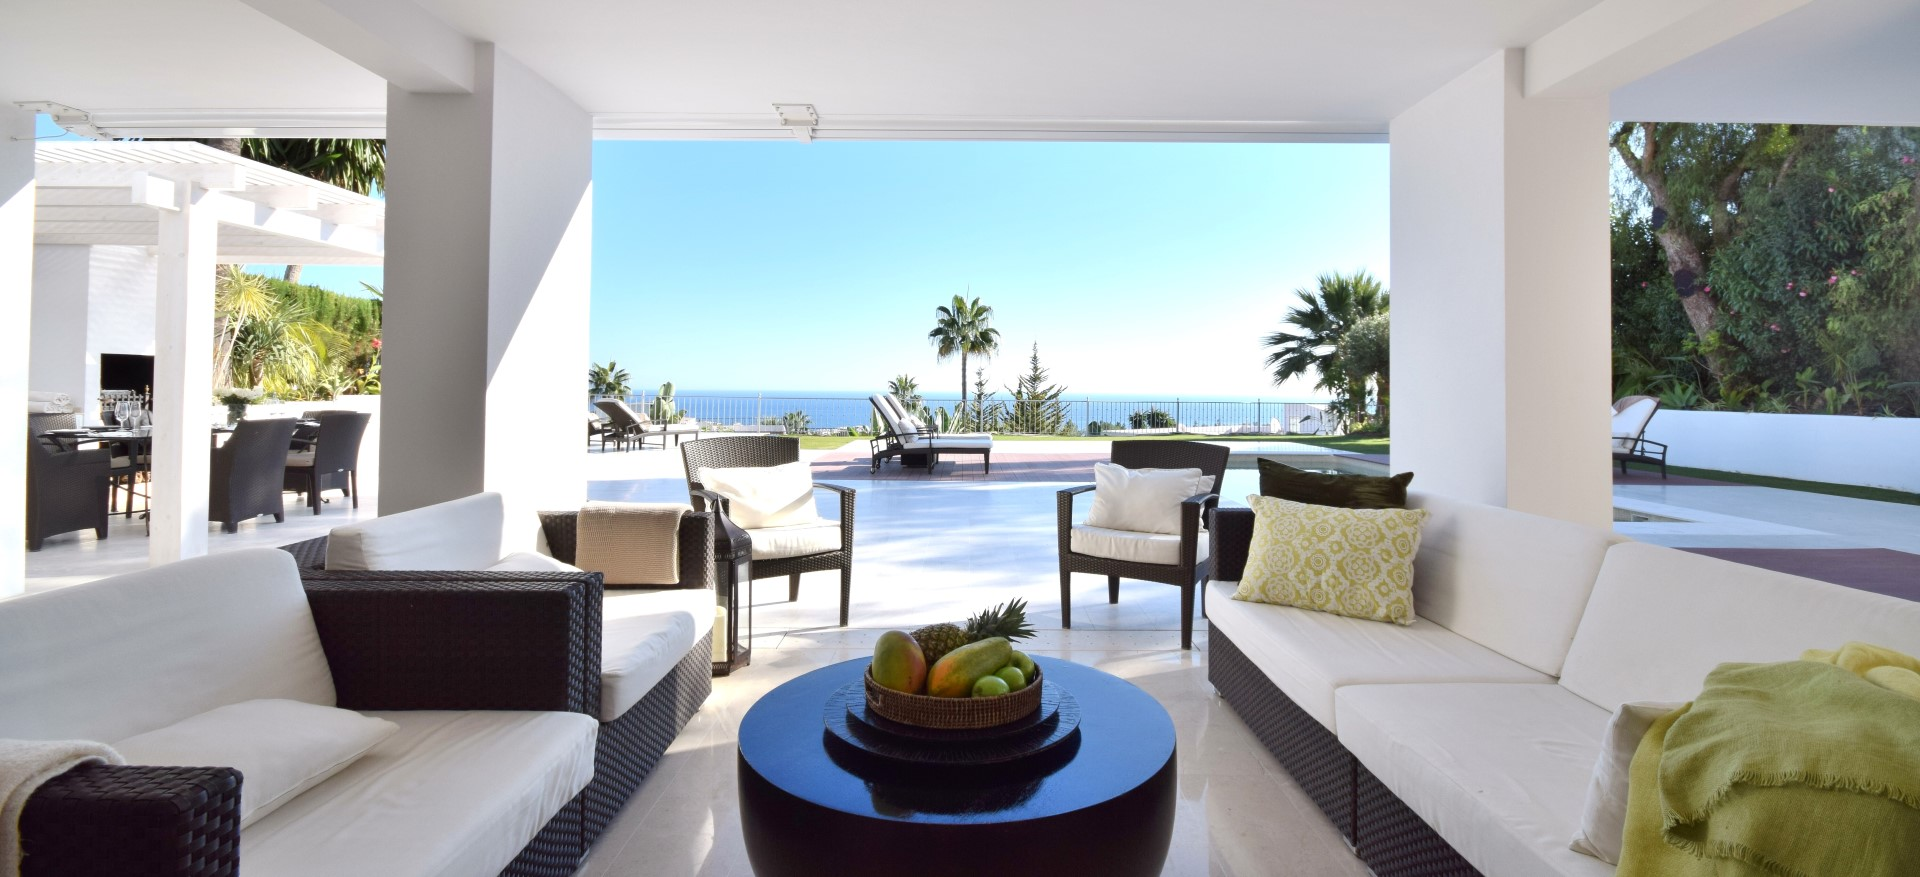 Properties For Sale & Rent In Altos Reales, Marbella